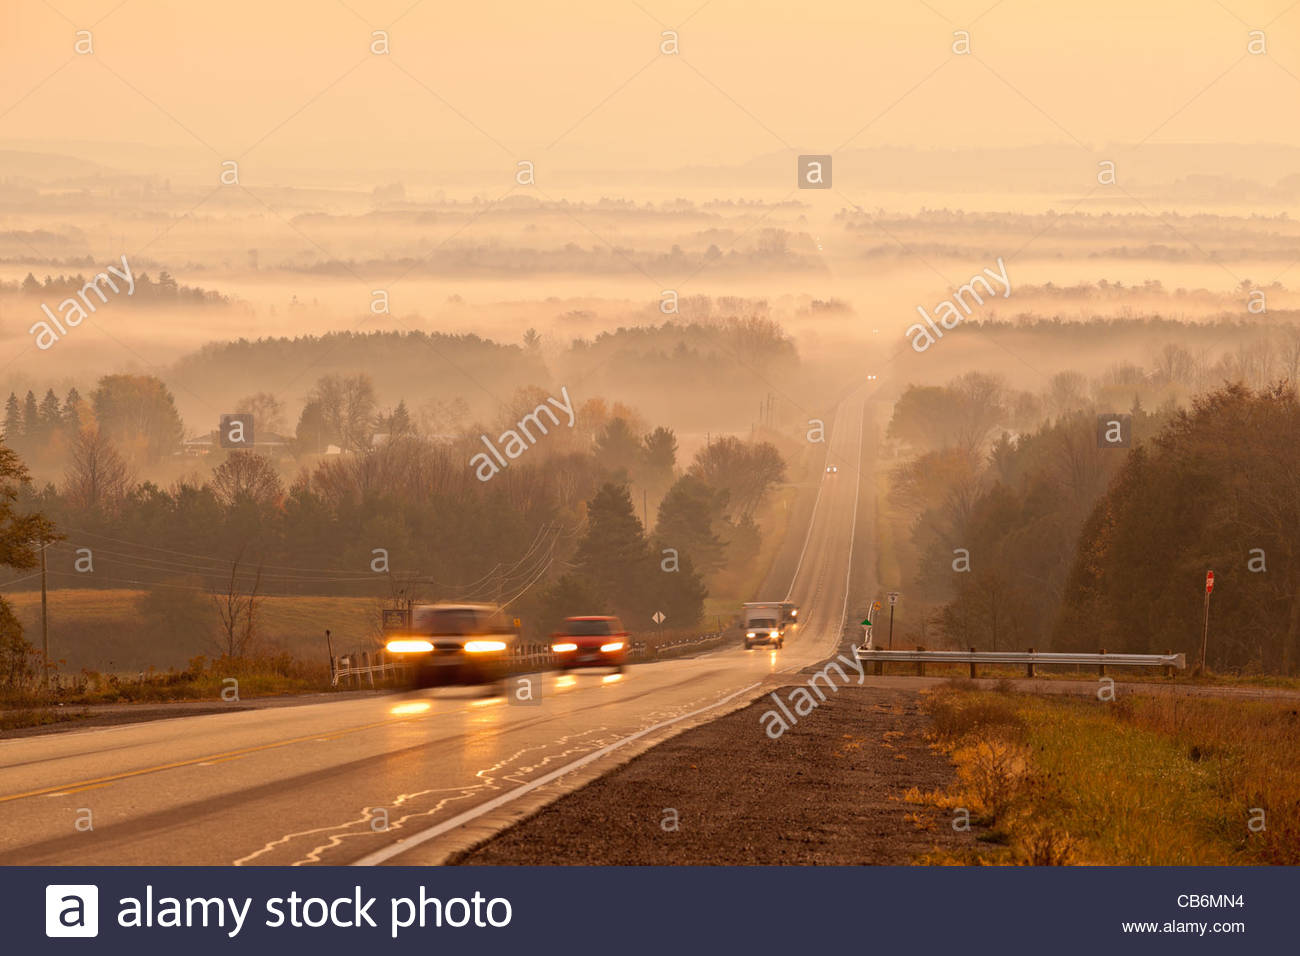 Commuters and rolling farmland early on a autumn morning in a radiation type fog in Durham region in Ontario Canada - Stock Image